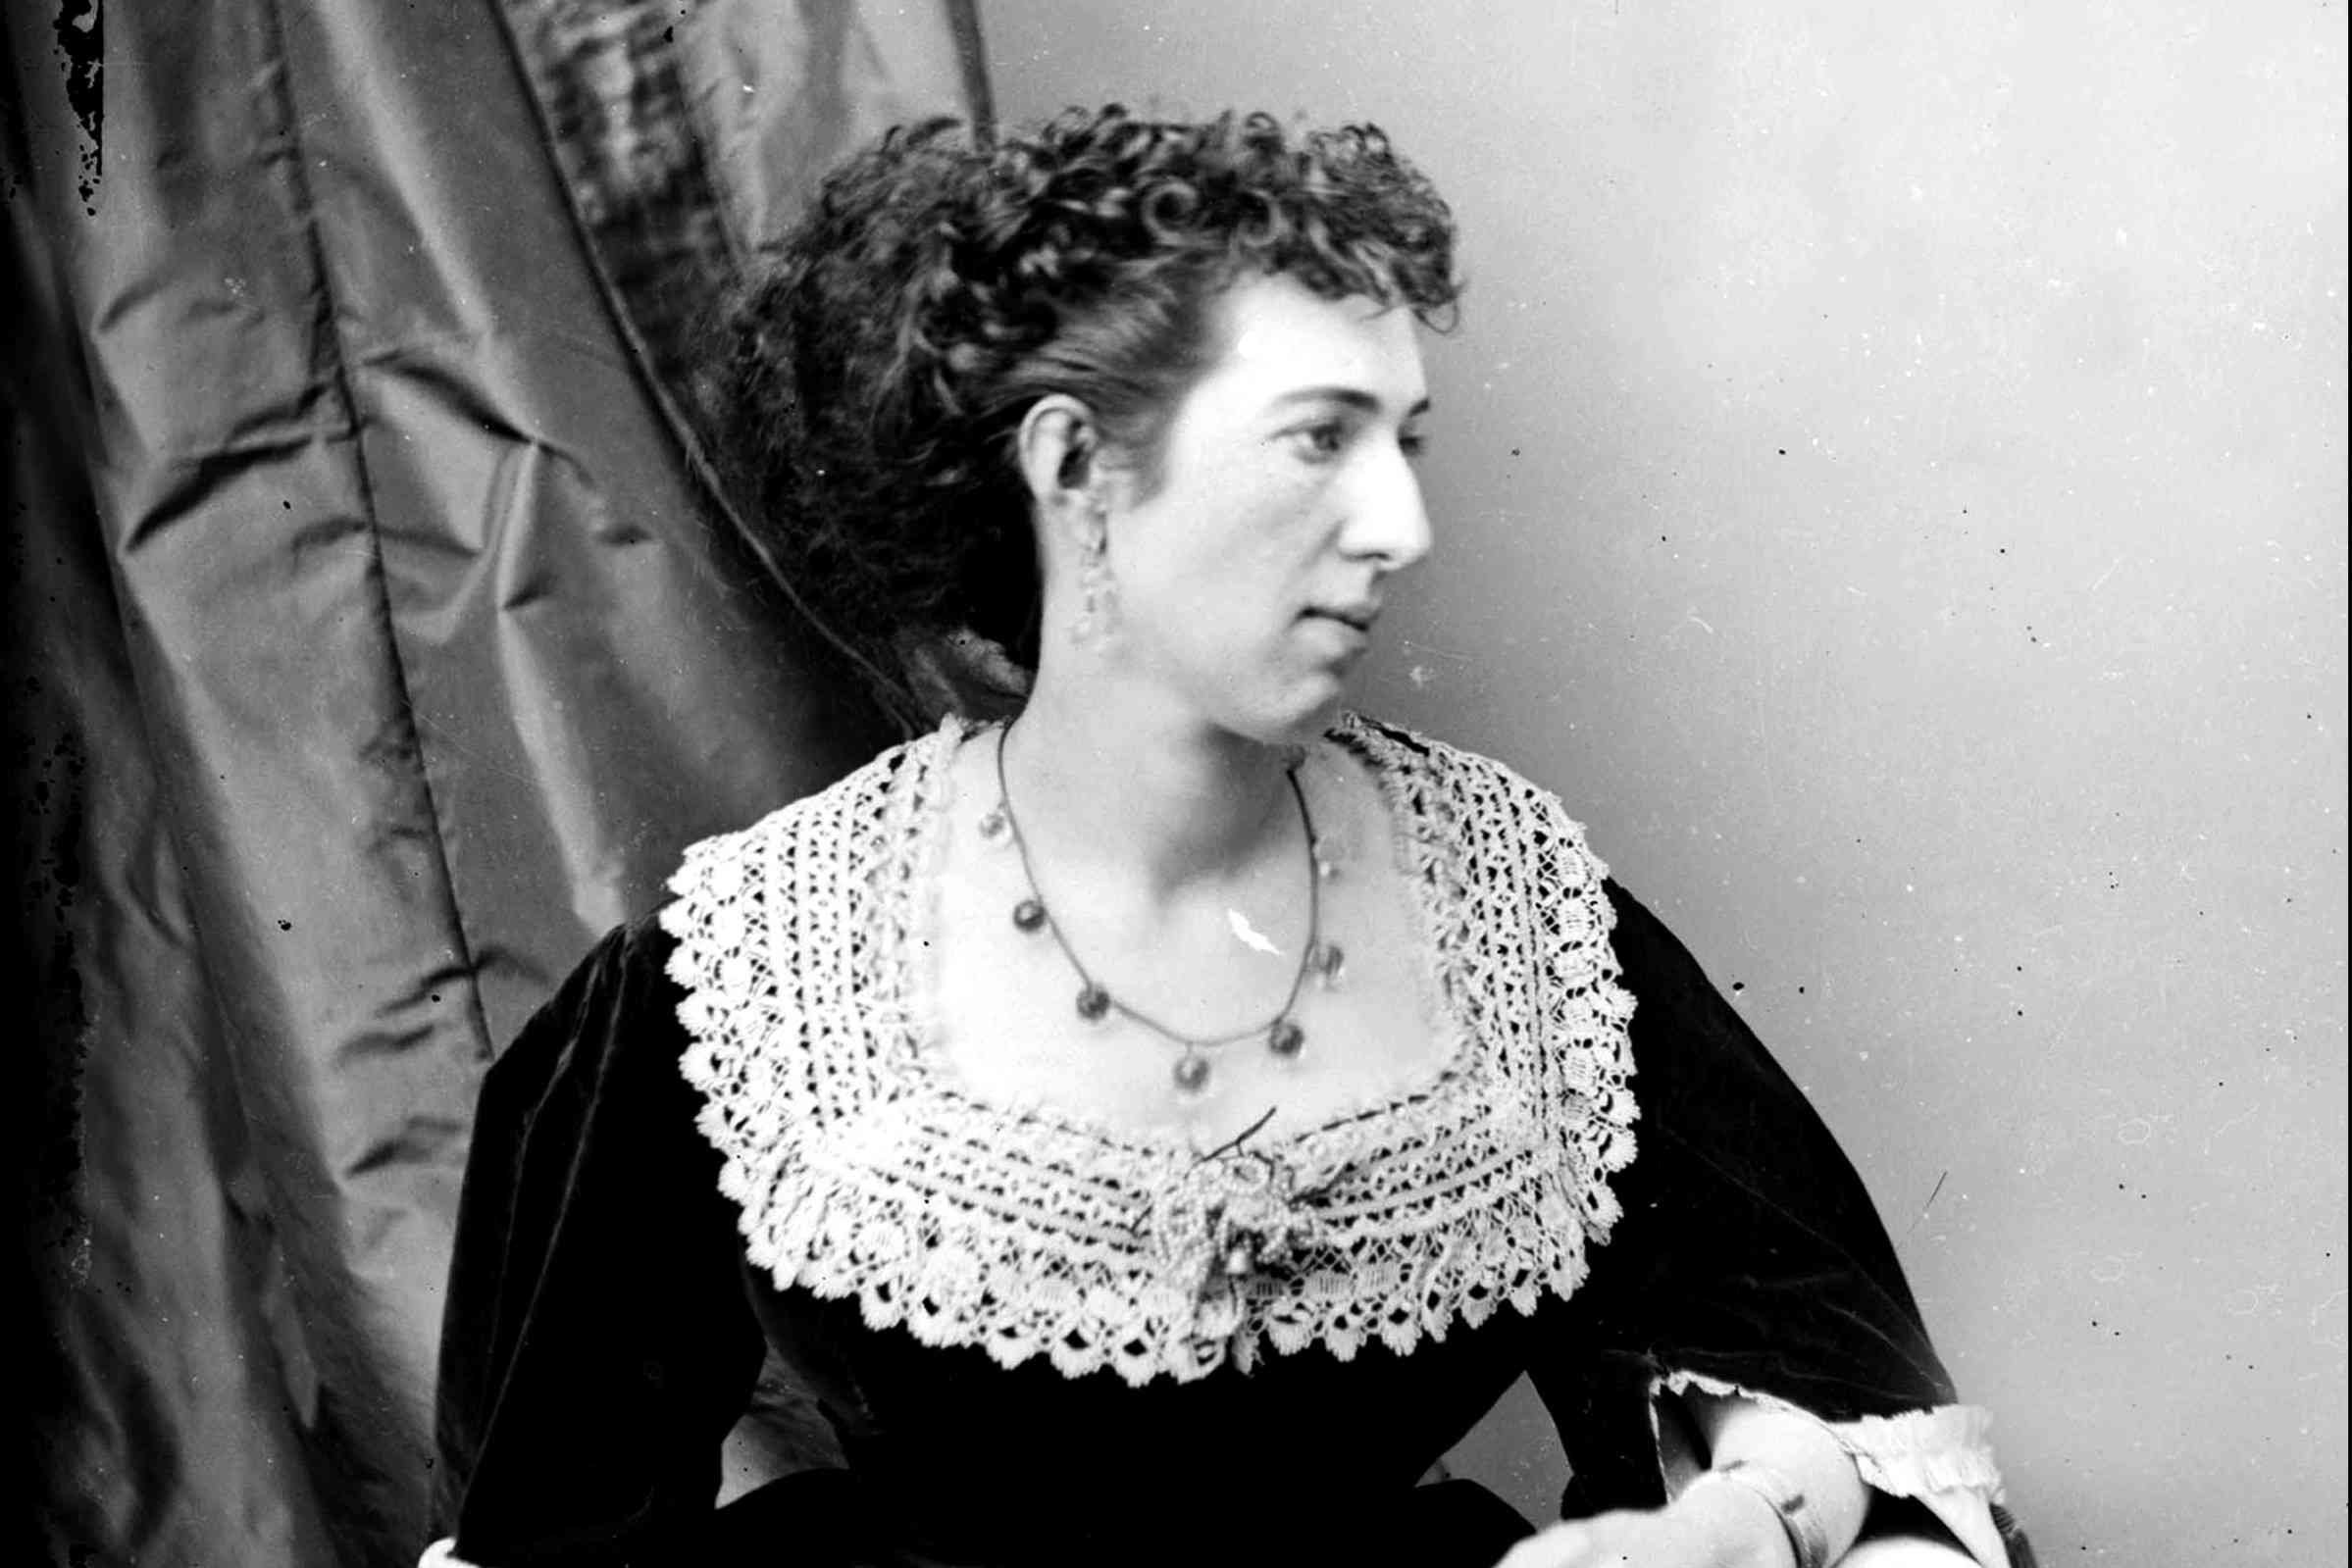 Belle Boyd posed for a photograph